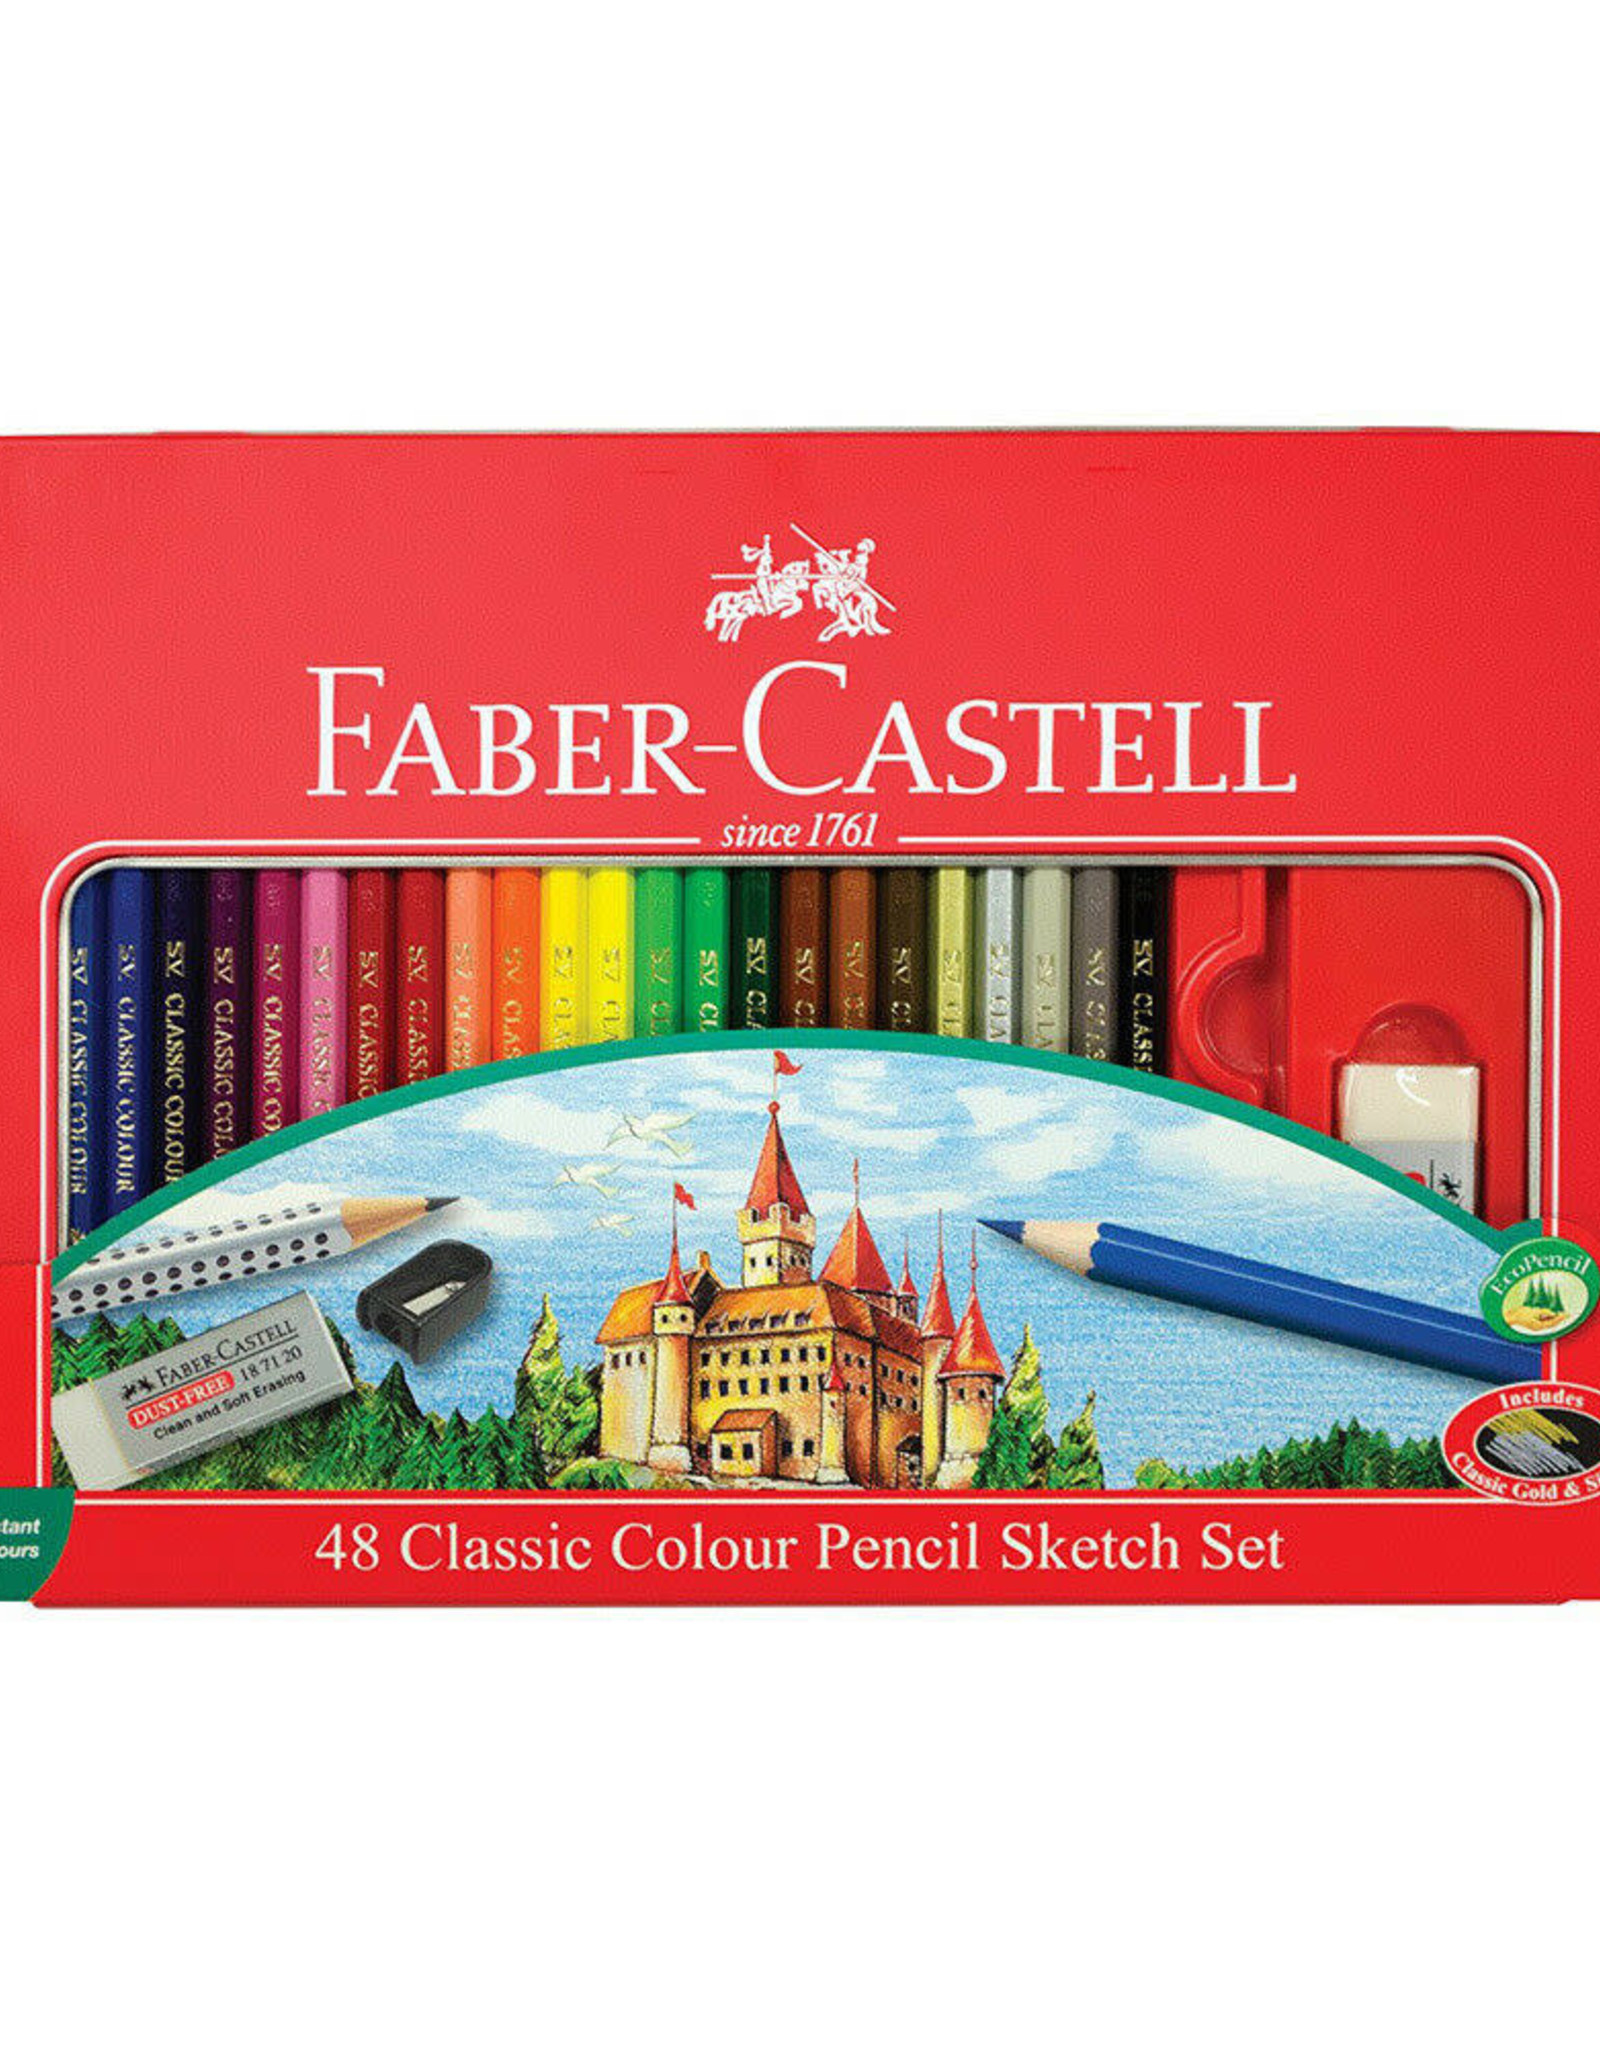 FABER-CASTELL Faber-Castell 48ct Classic Color Pencil & Sketching Tin Set